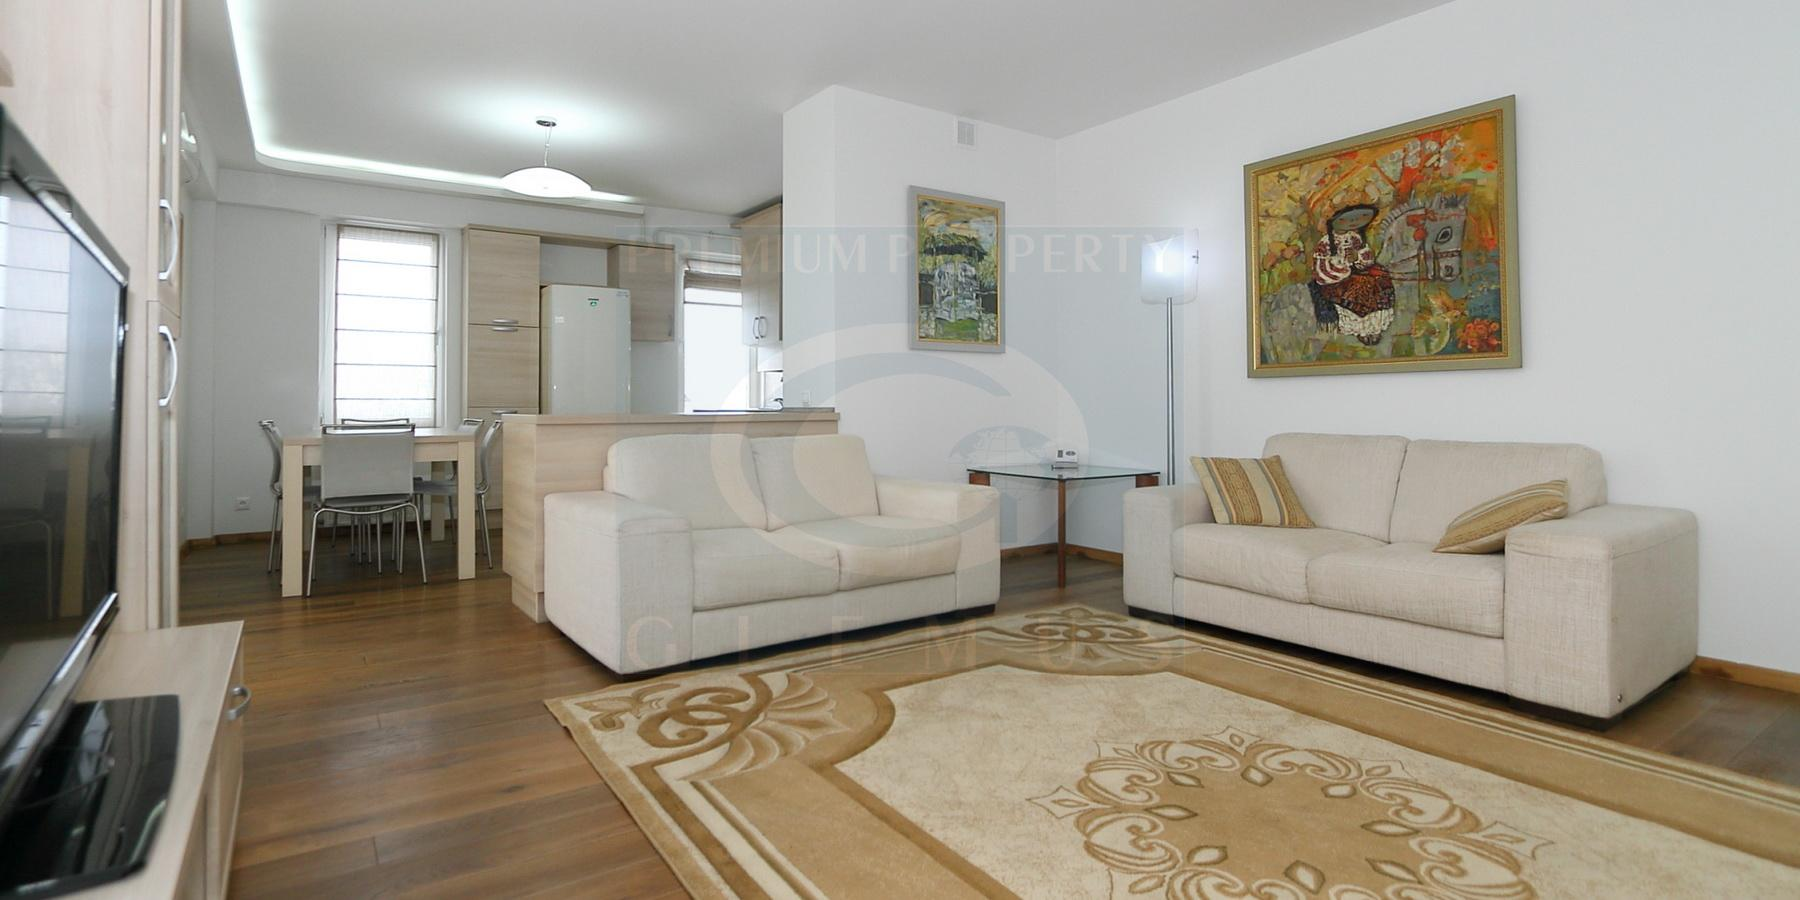 Magnificent 3Bedroom APT opposite Turkish Embassy